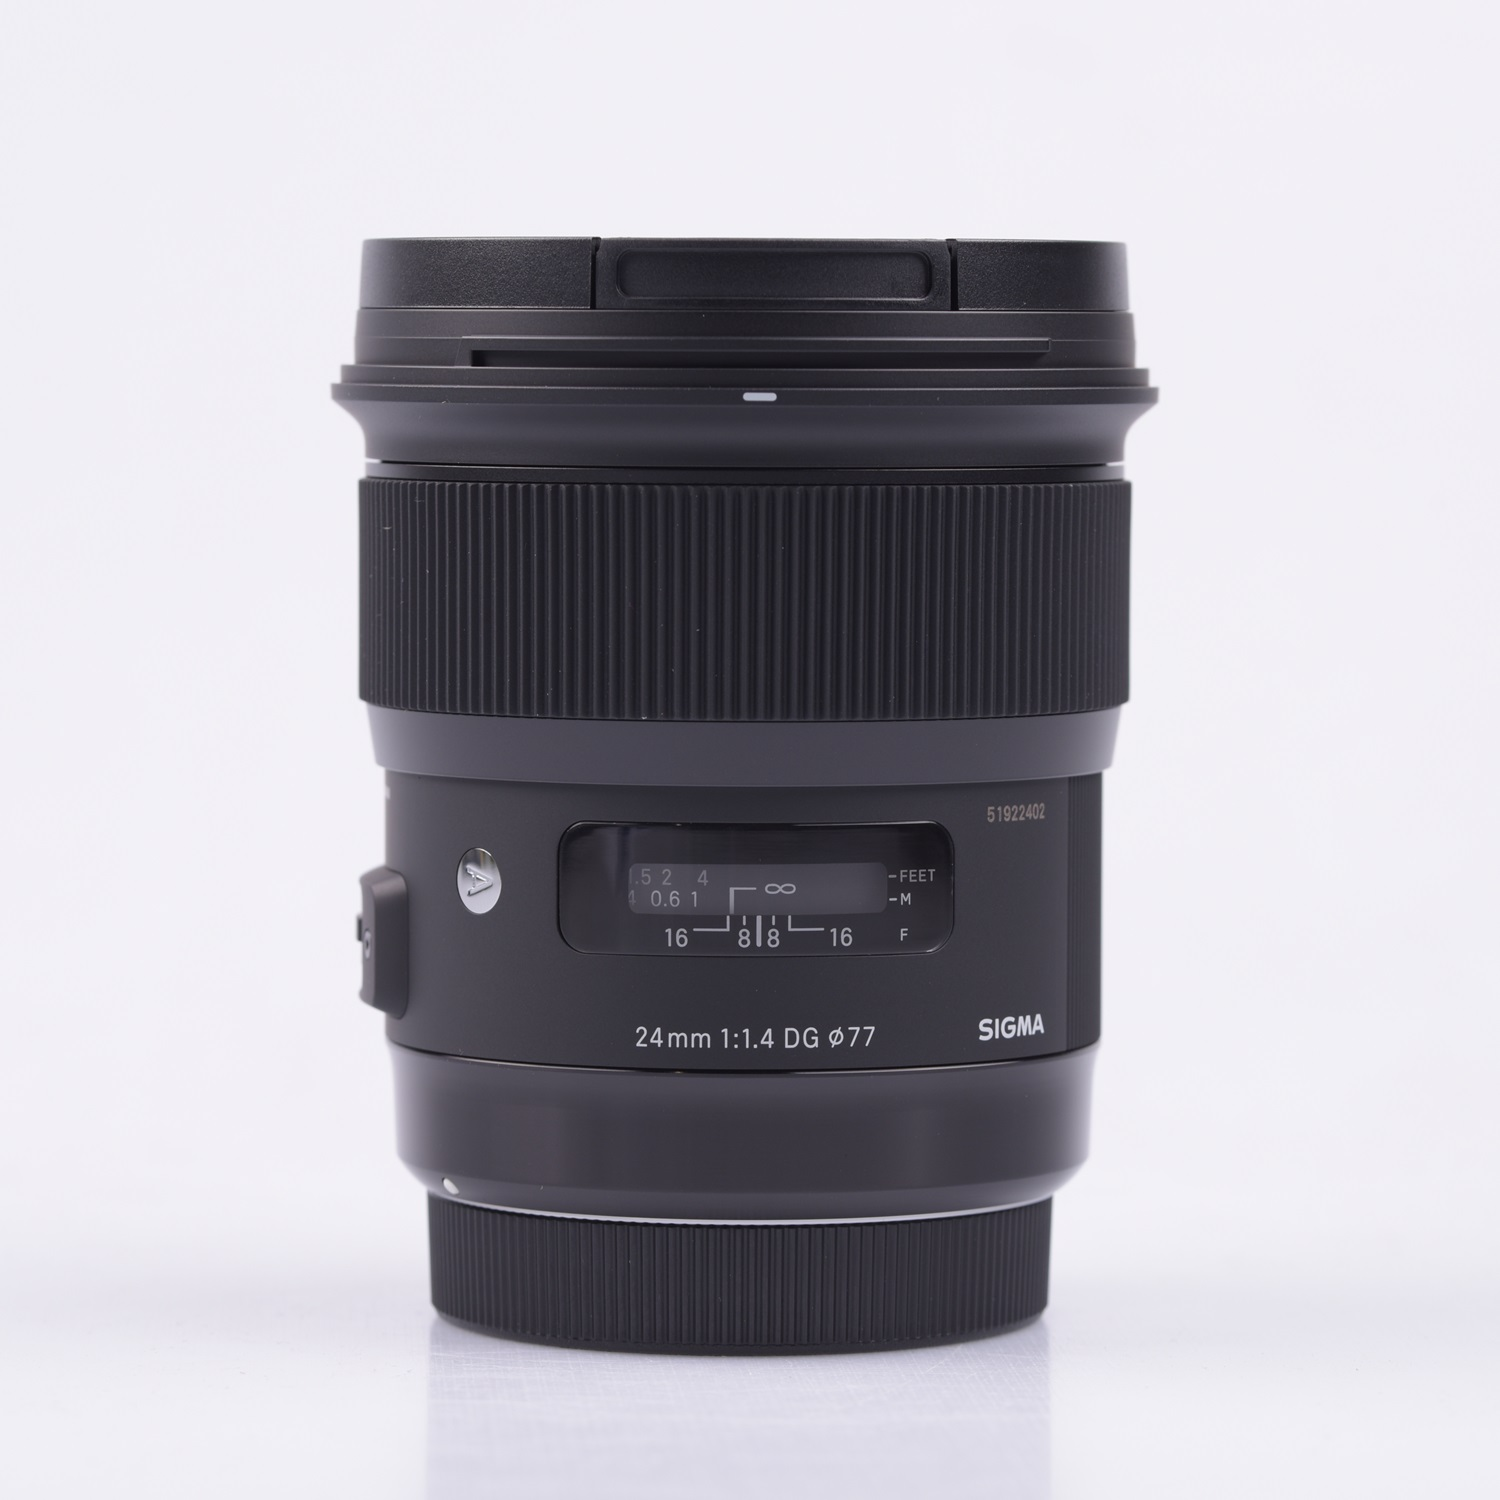 Image of Sigma ART 24mm f/1.4 DG HSM Lenses - Canon Mount